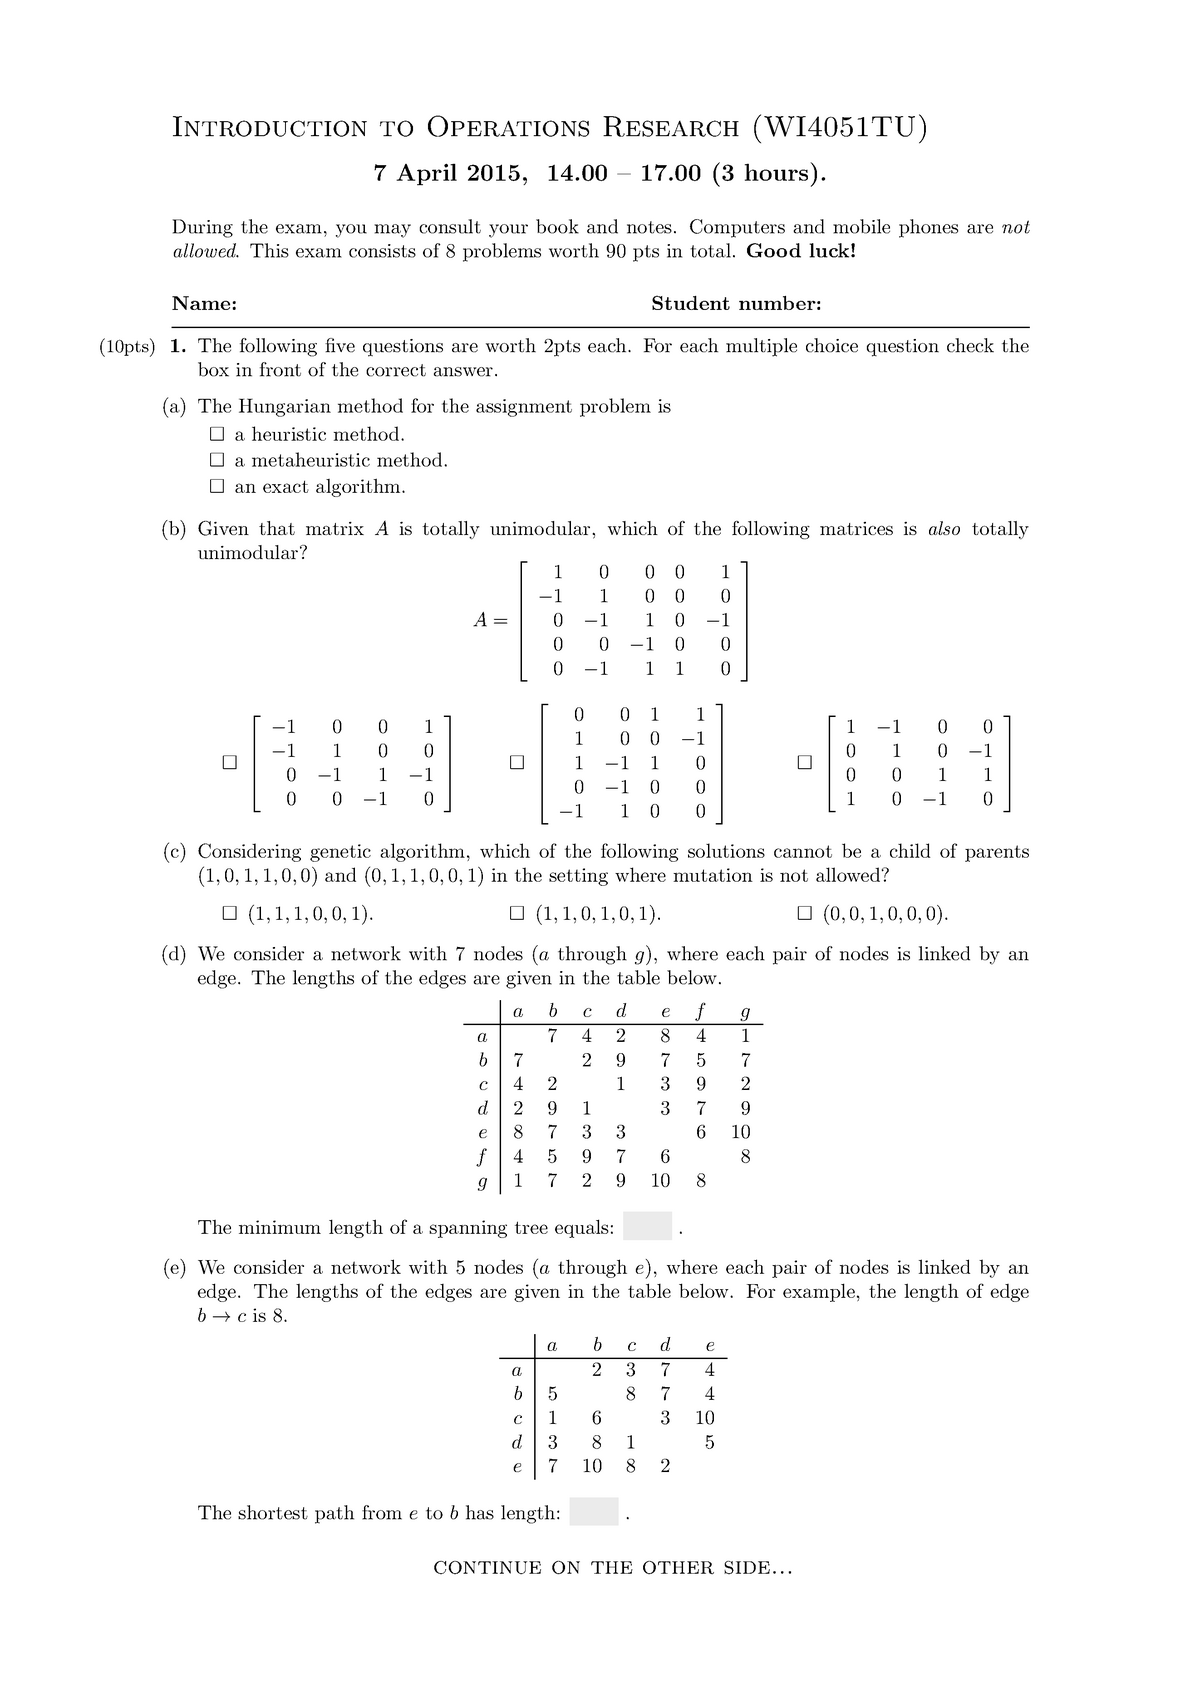 Exam 7 April 2015, questions and answers - WI4051TU